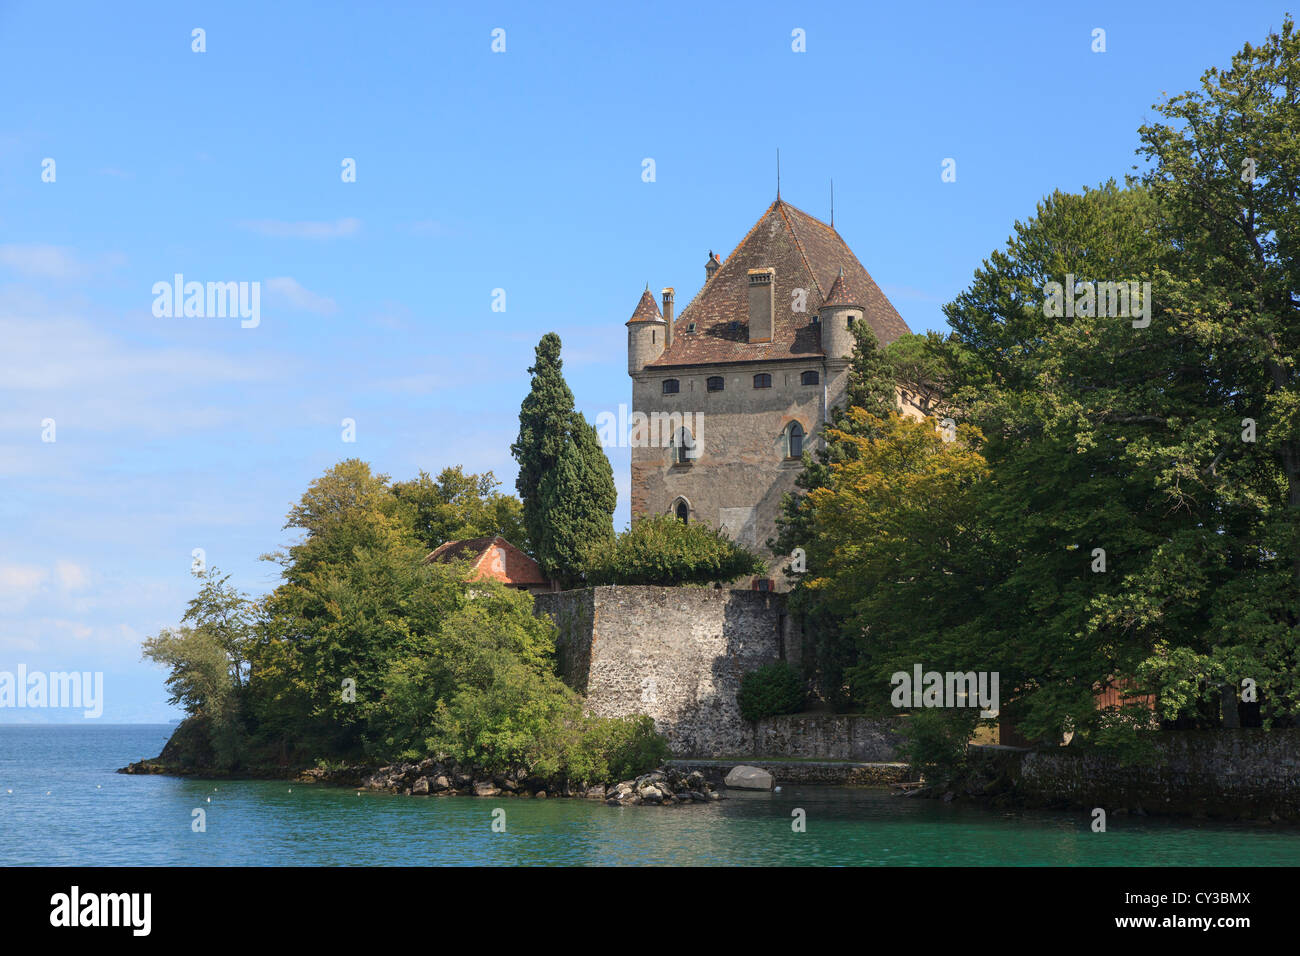 The castle in Yvoire on the French bank of Lake Geneva or Lac Leman - Stock Image